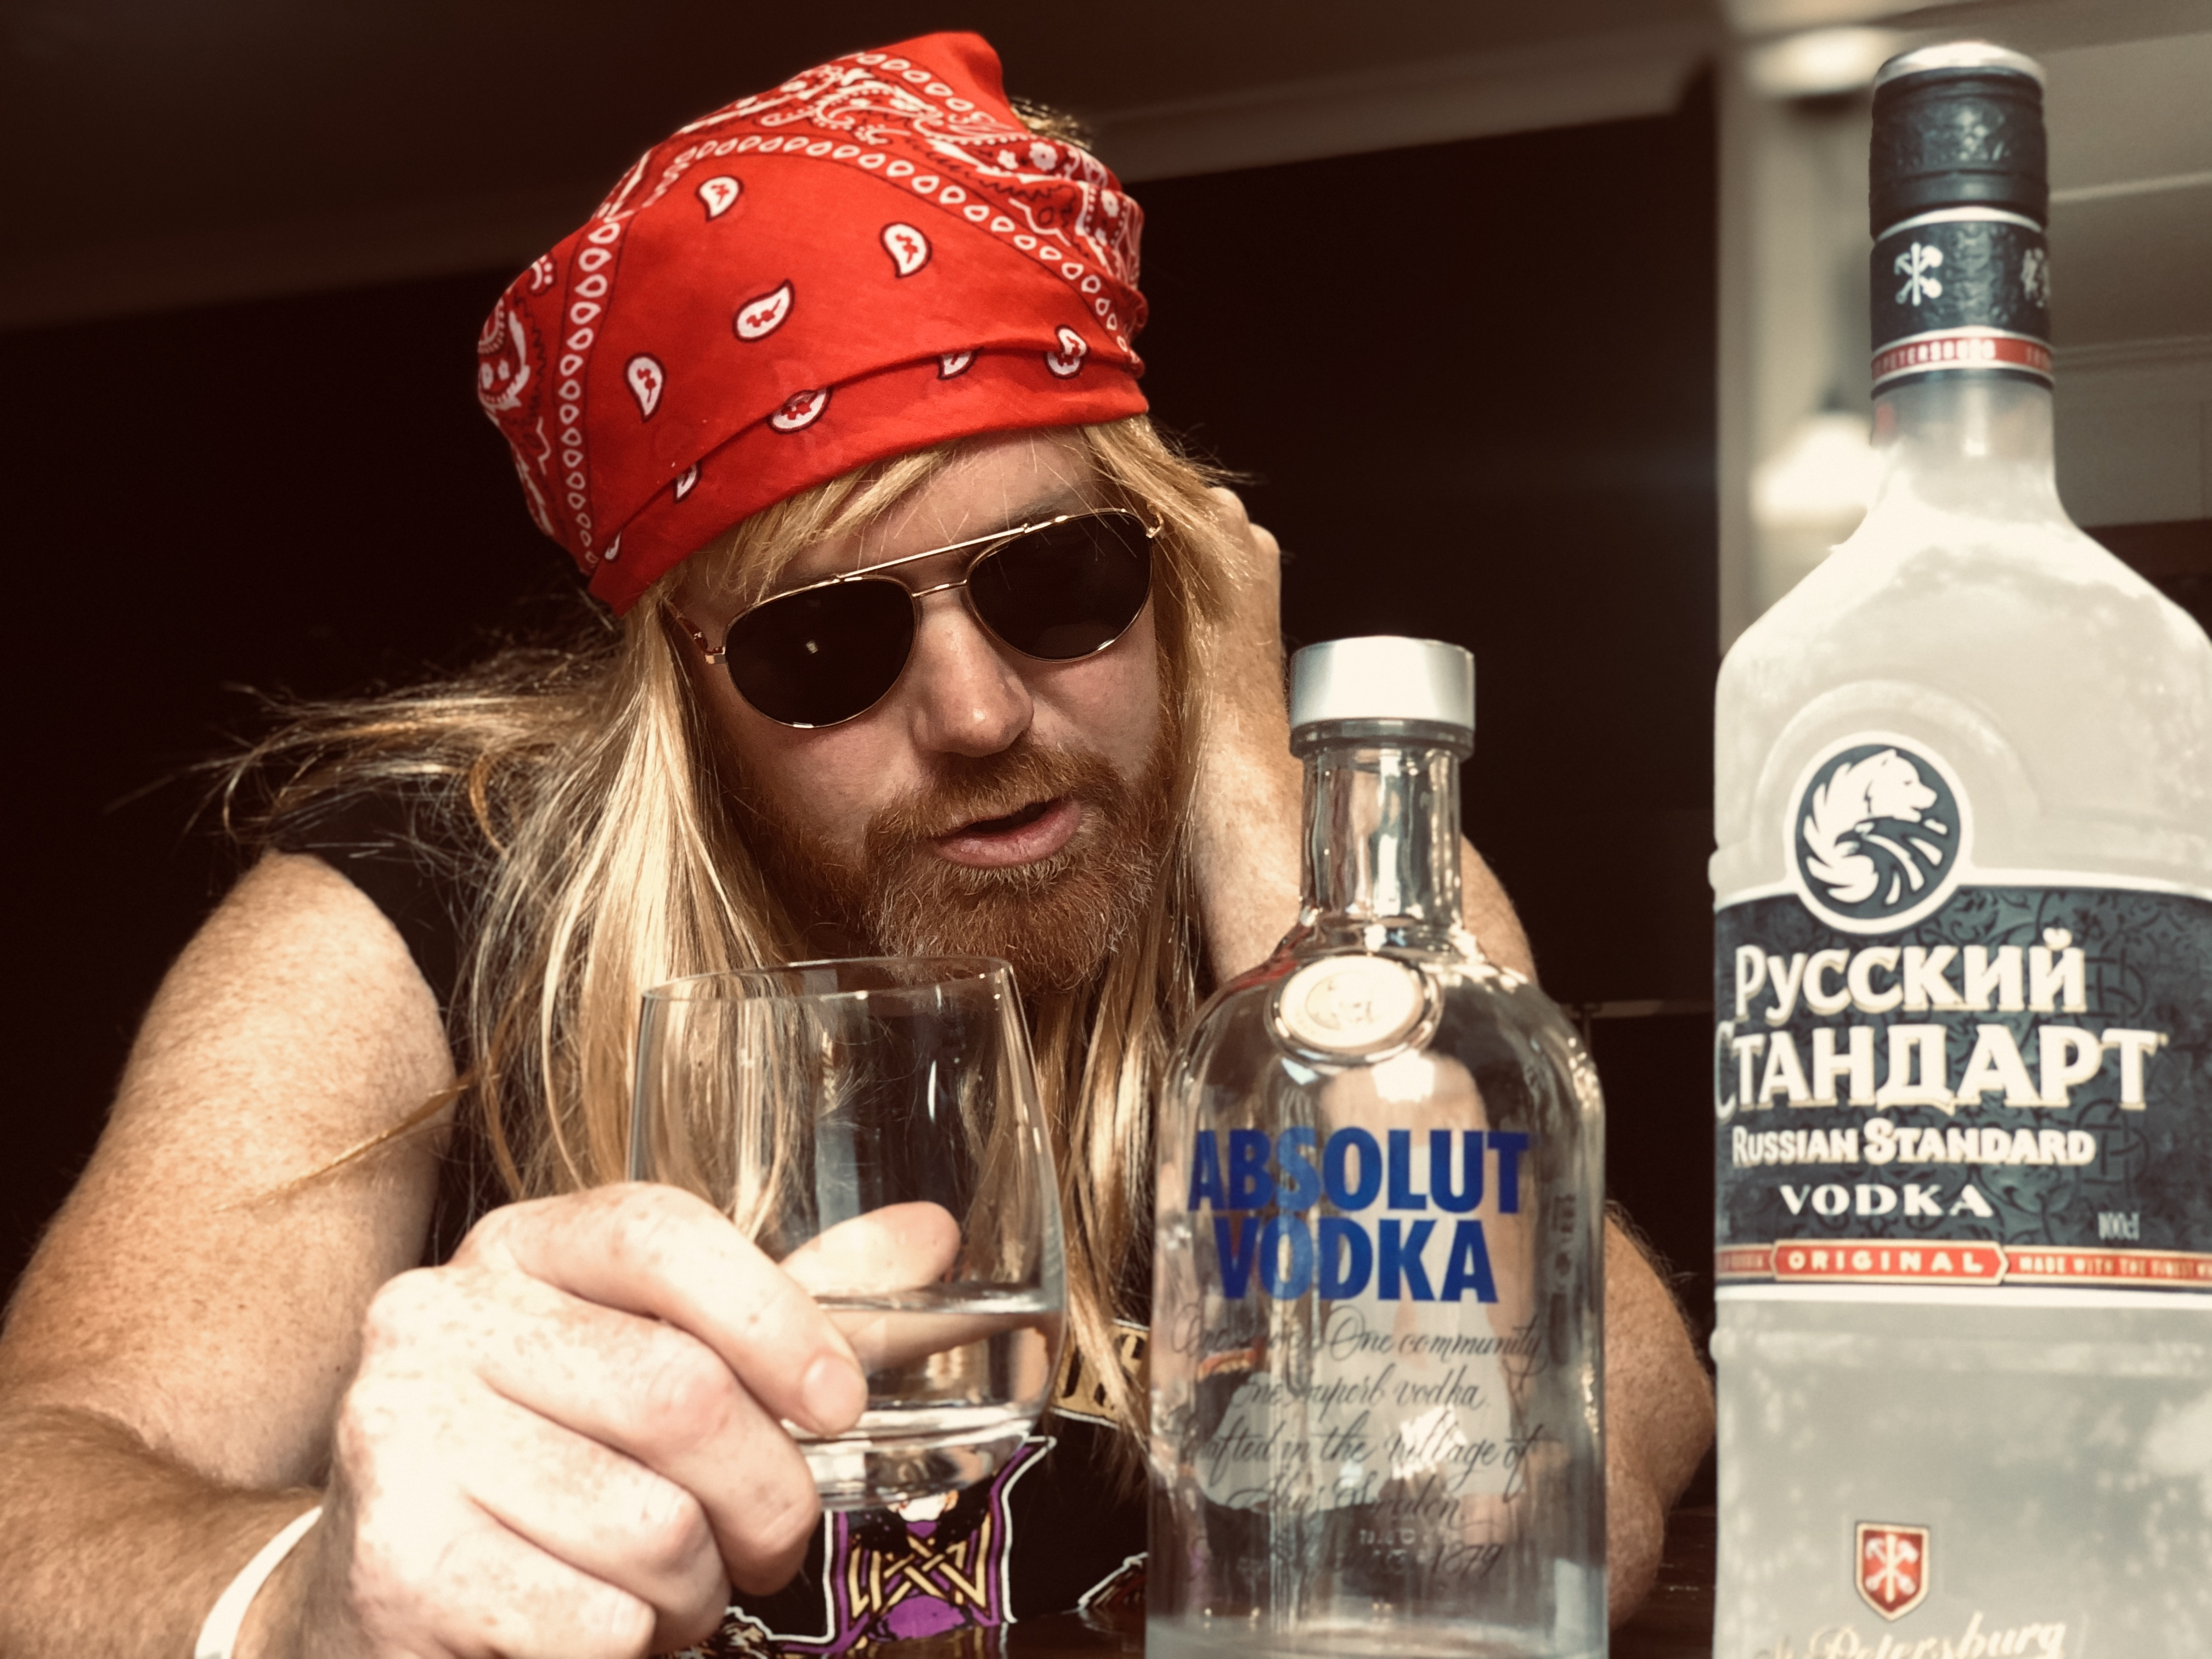 Axl Rose: All we need is just a little Patience